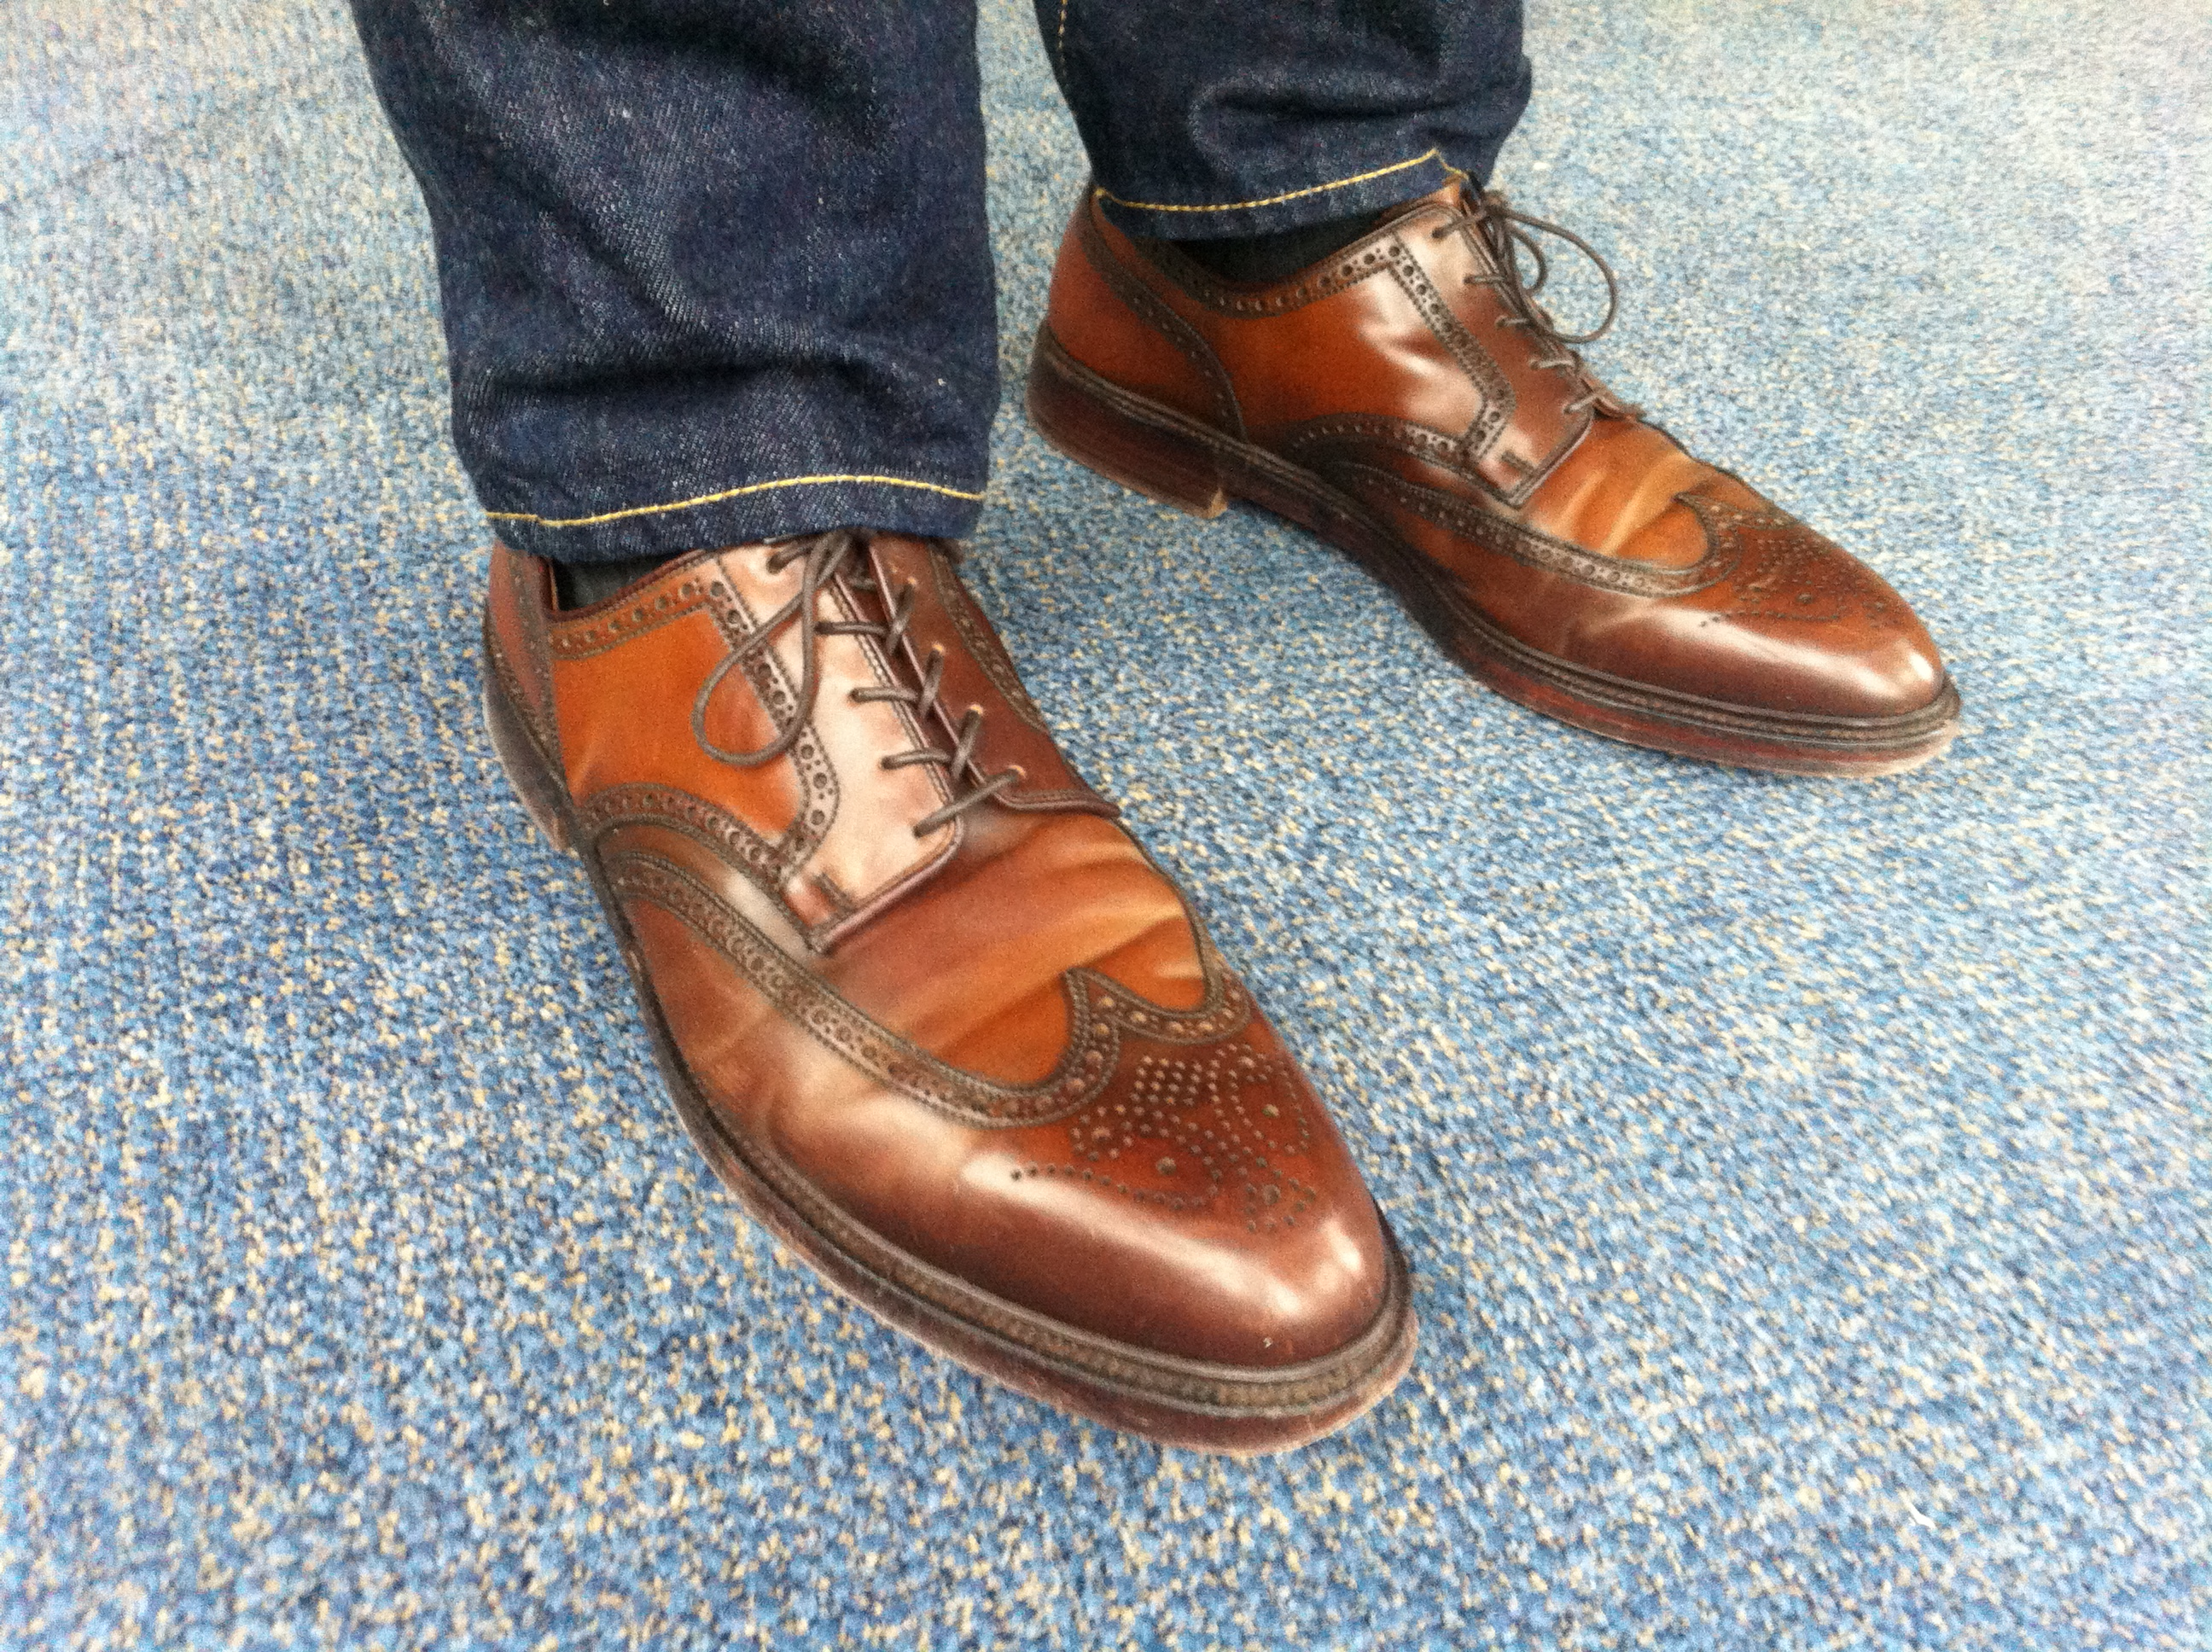 Murlsquirl's photos in Derbies or Oxfords with Jeans